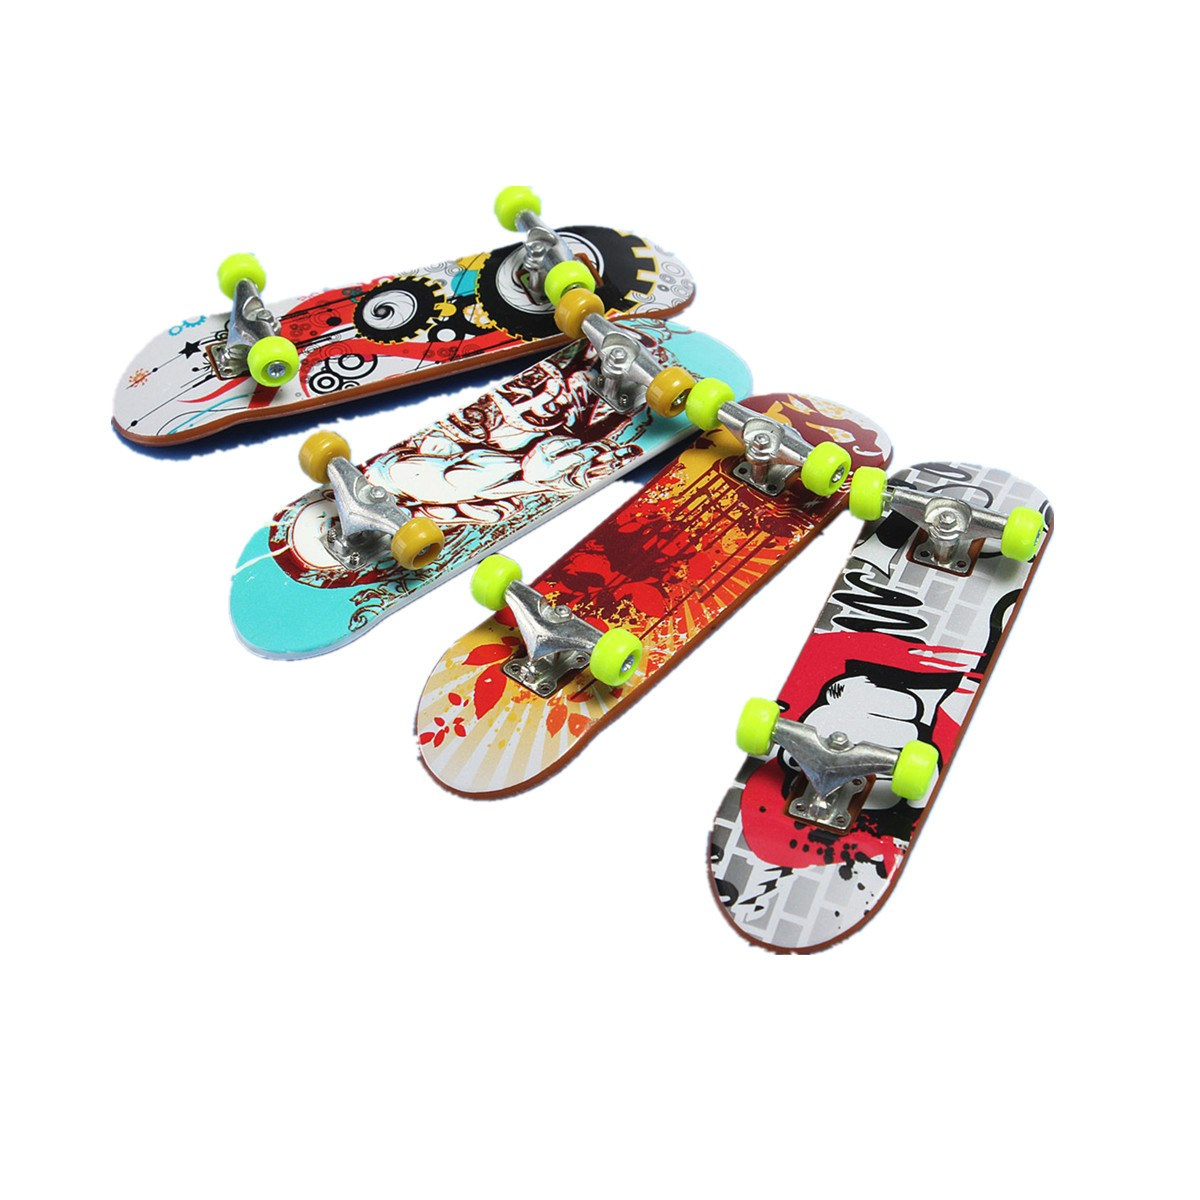 Professional Finger Board Truck Skateboard Boy Kid Children Party Wooden Toy Birthday Gift Brain Development Promotion In Mini Skateboards Bikes From Toys